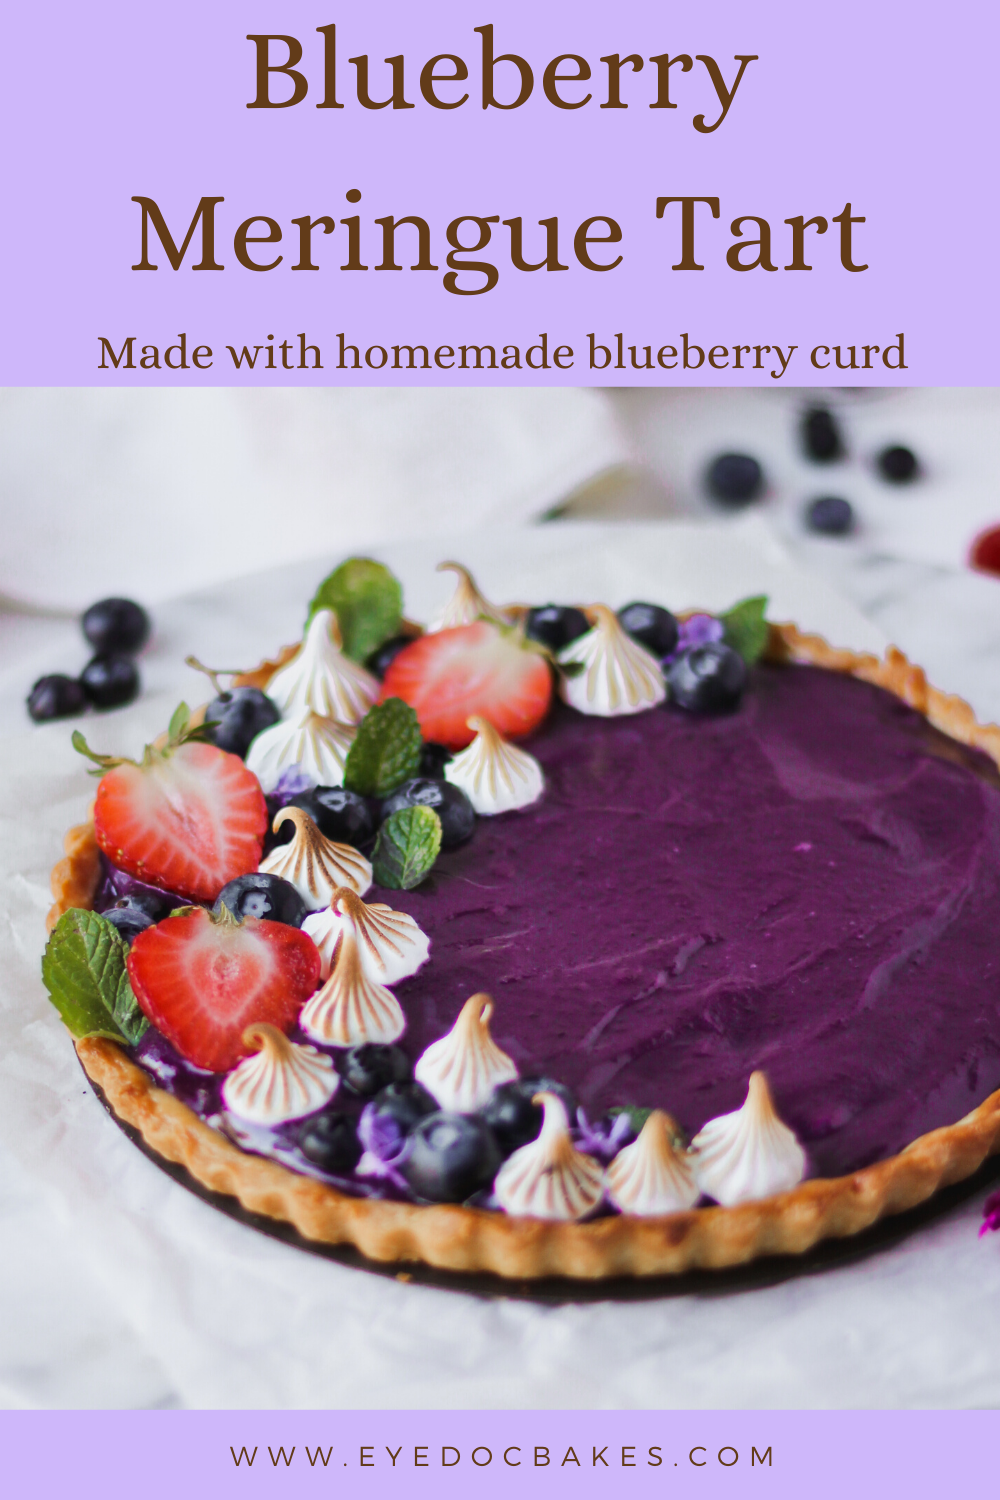 sweet blueberry curd fills this shortcrust pastry to make a yummy blueberry meringue tart